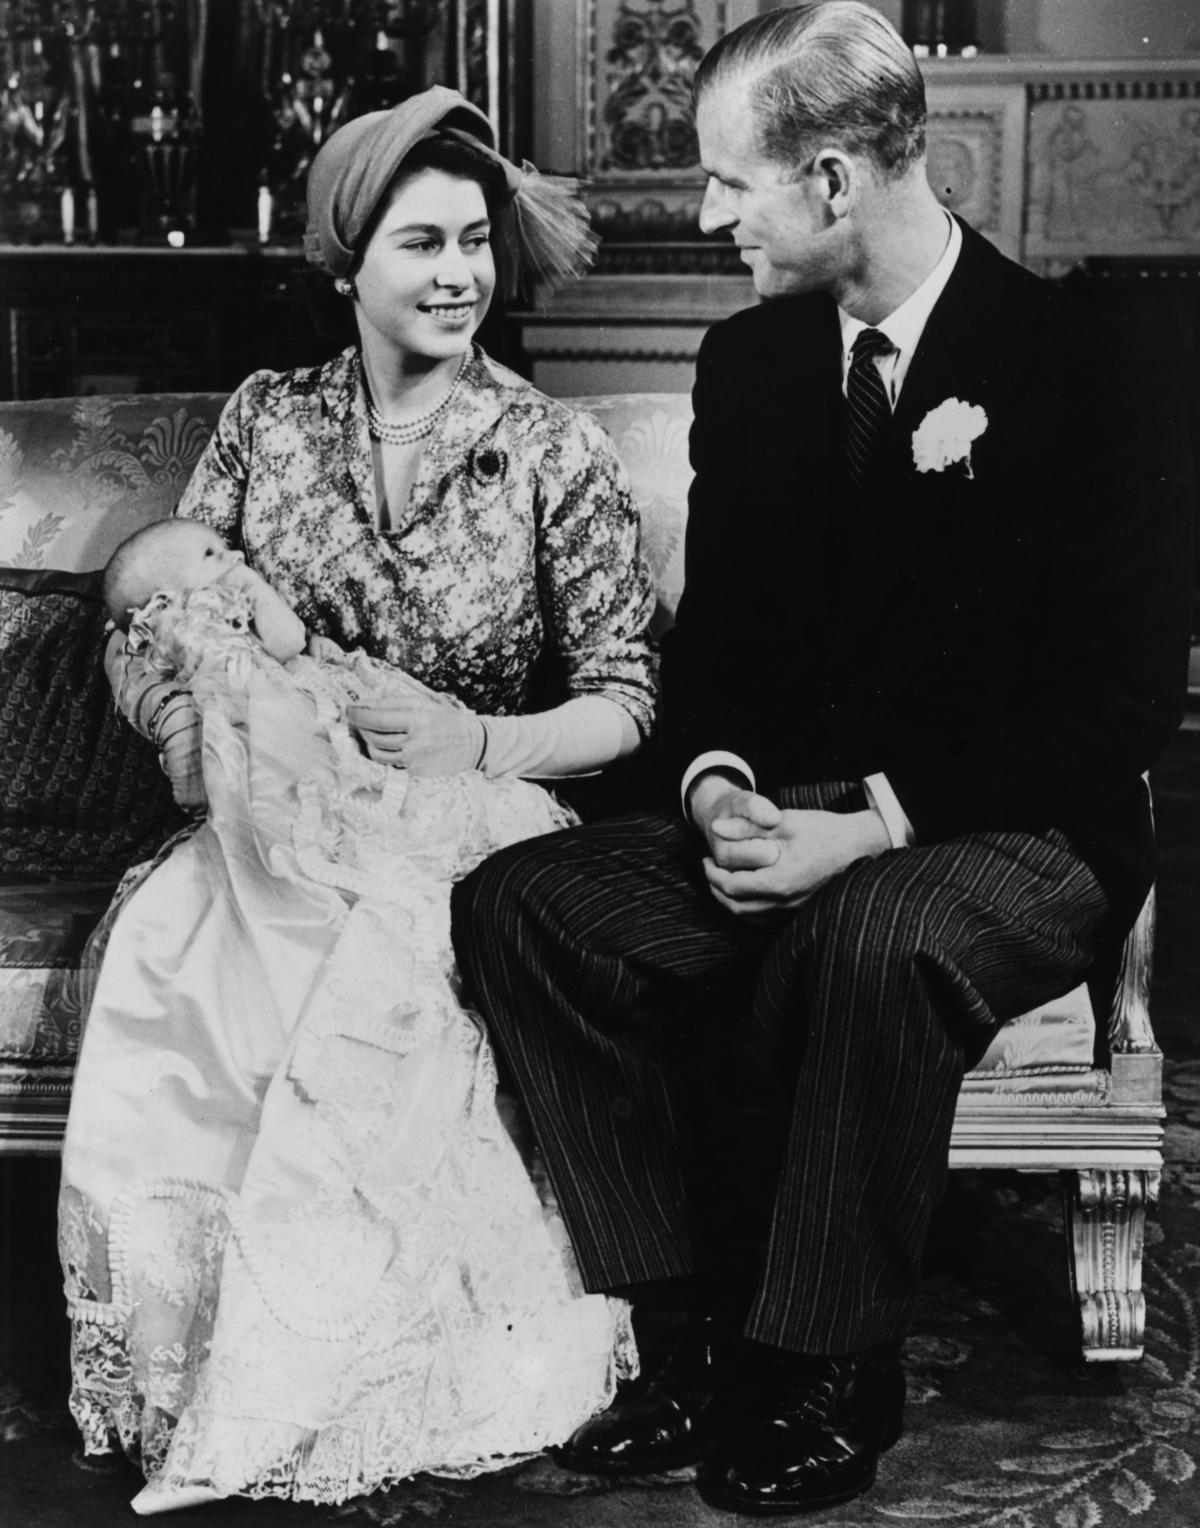 Elizabeth and Philip smile at each other after their daughter, Princess Anne, was christened in 1950. Elizabeth was not yet queen at the time.